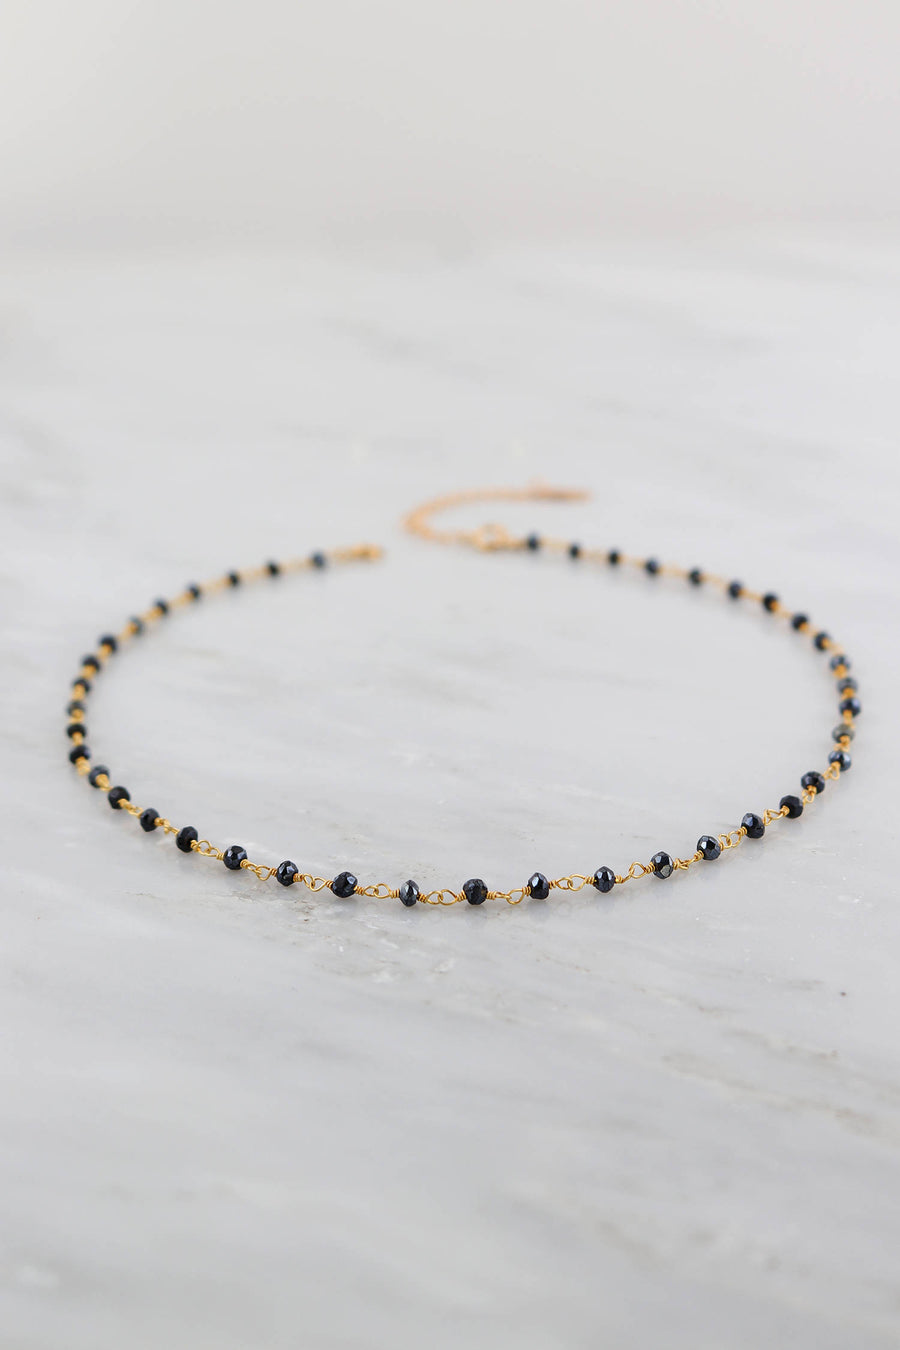 Black Spinel Wire Wrapped choker, Black Gemstone Choker, Choker Gift for Wife, Faceted Beaded Choker Chain, Gold Choker Chain, Gift for her